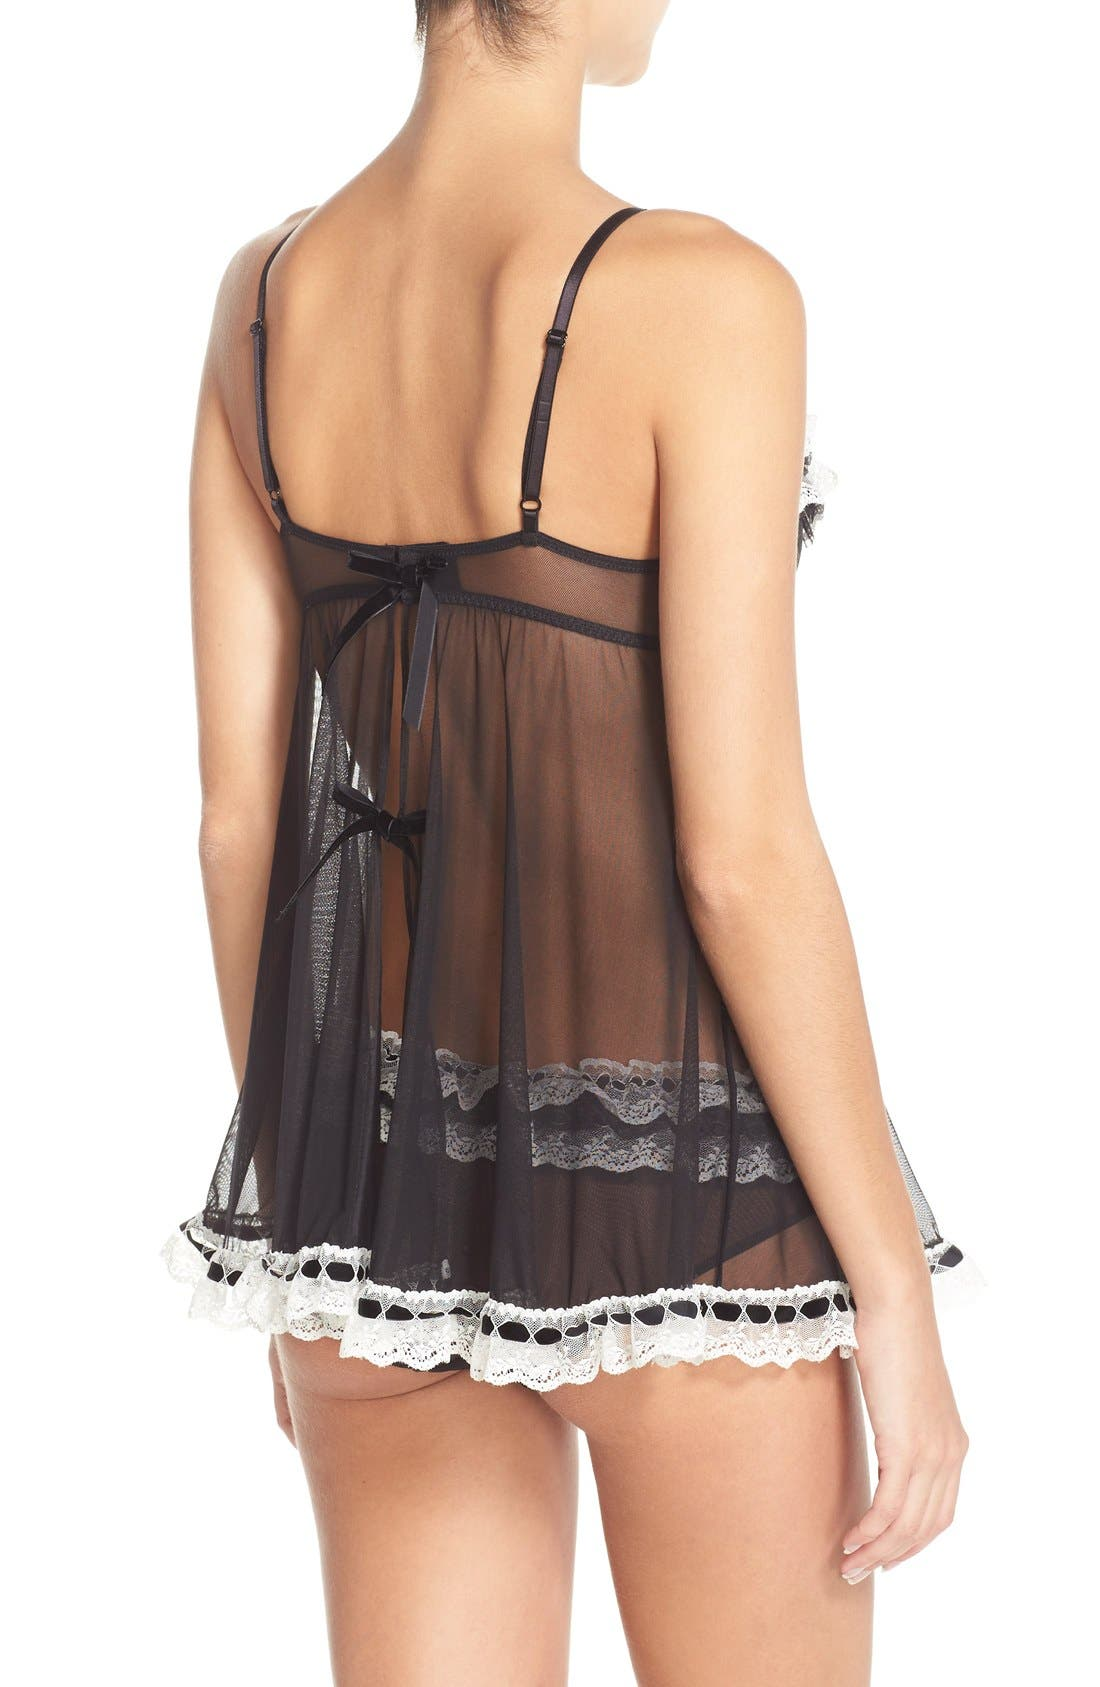 'Ruffles Galore' Underwire Chemise & Hipster Briefs,                             Alternate thumbnail 4, color,                             002